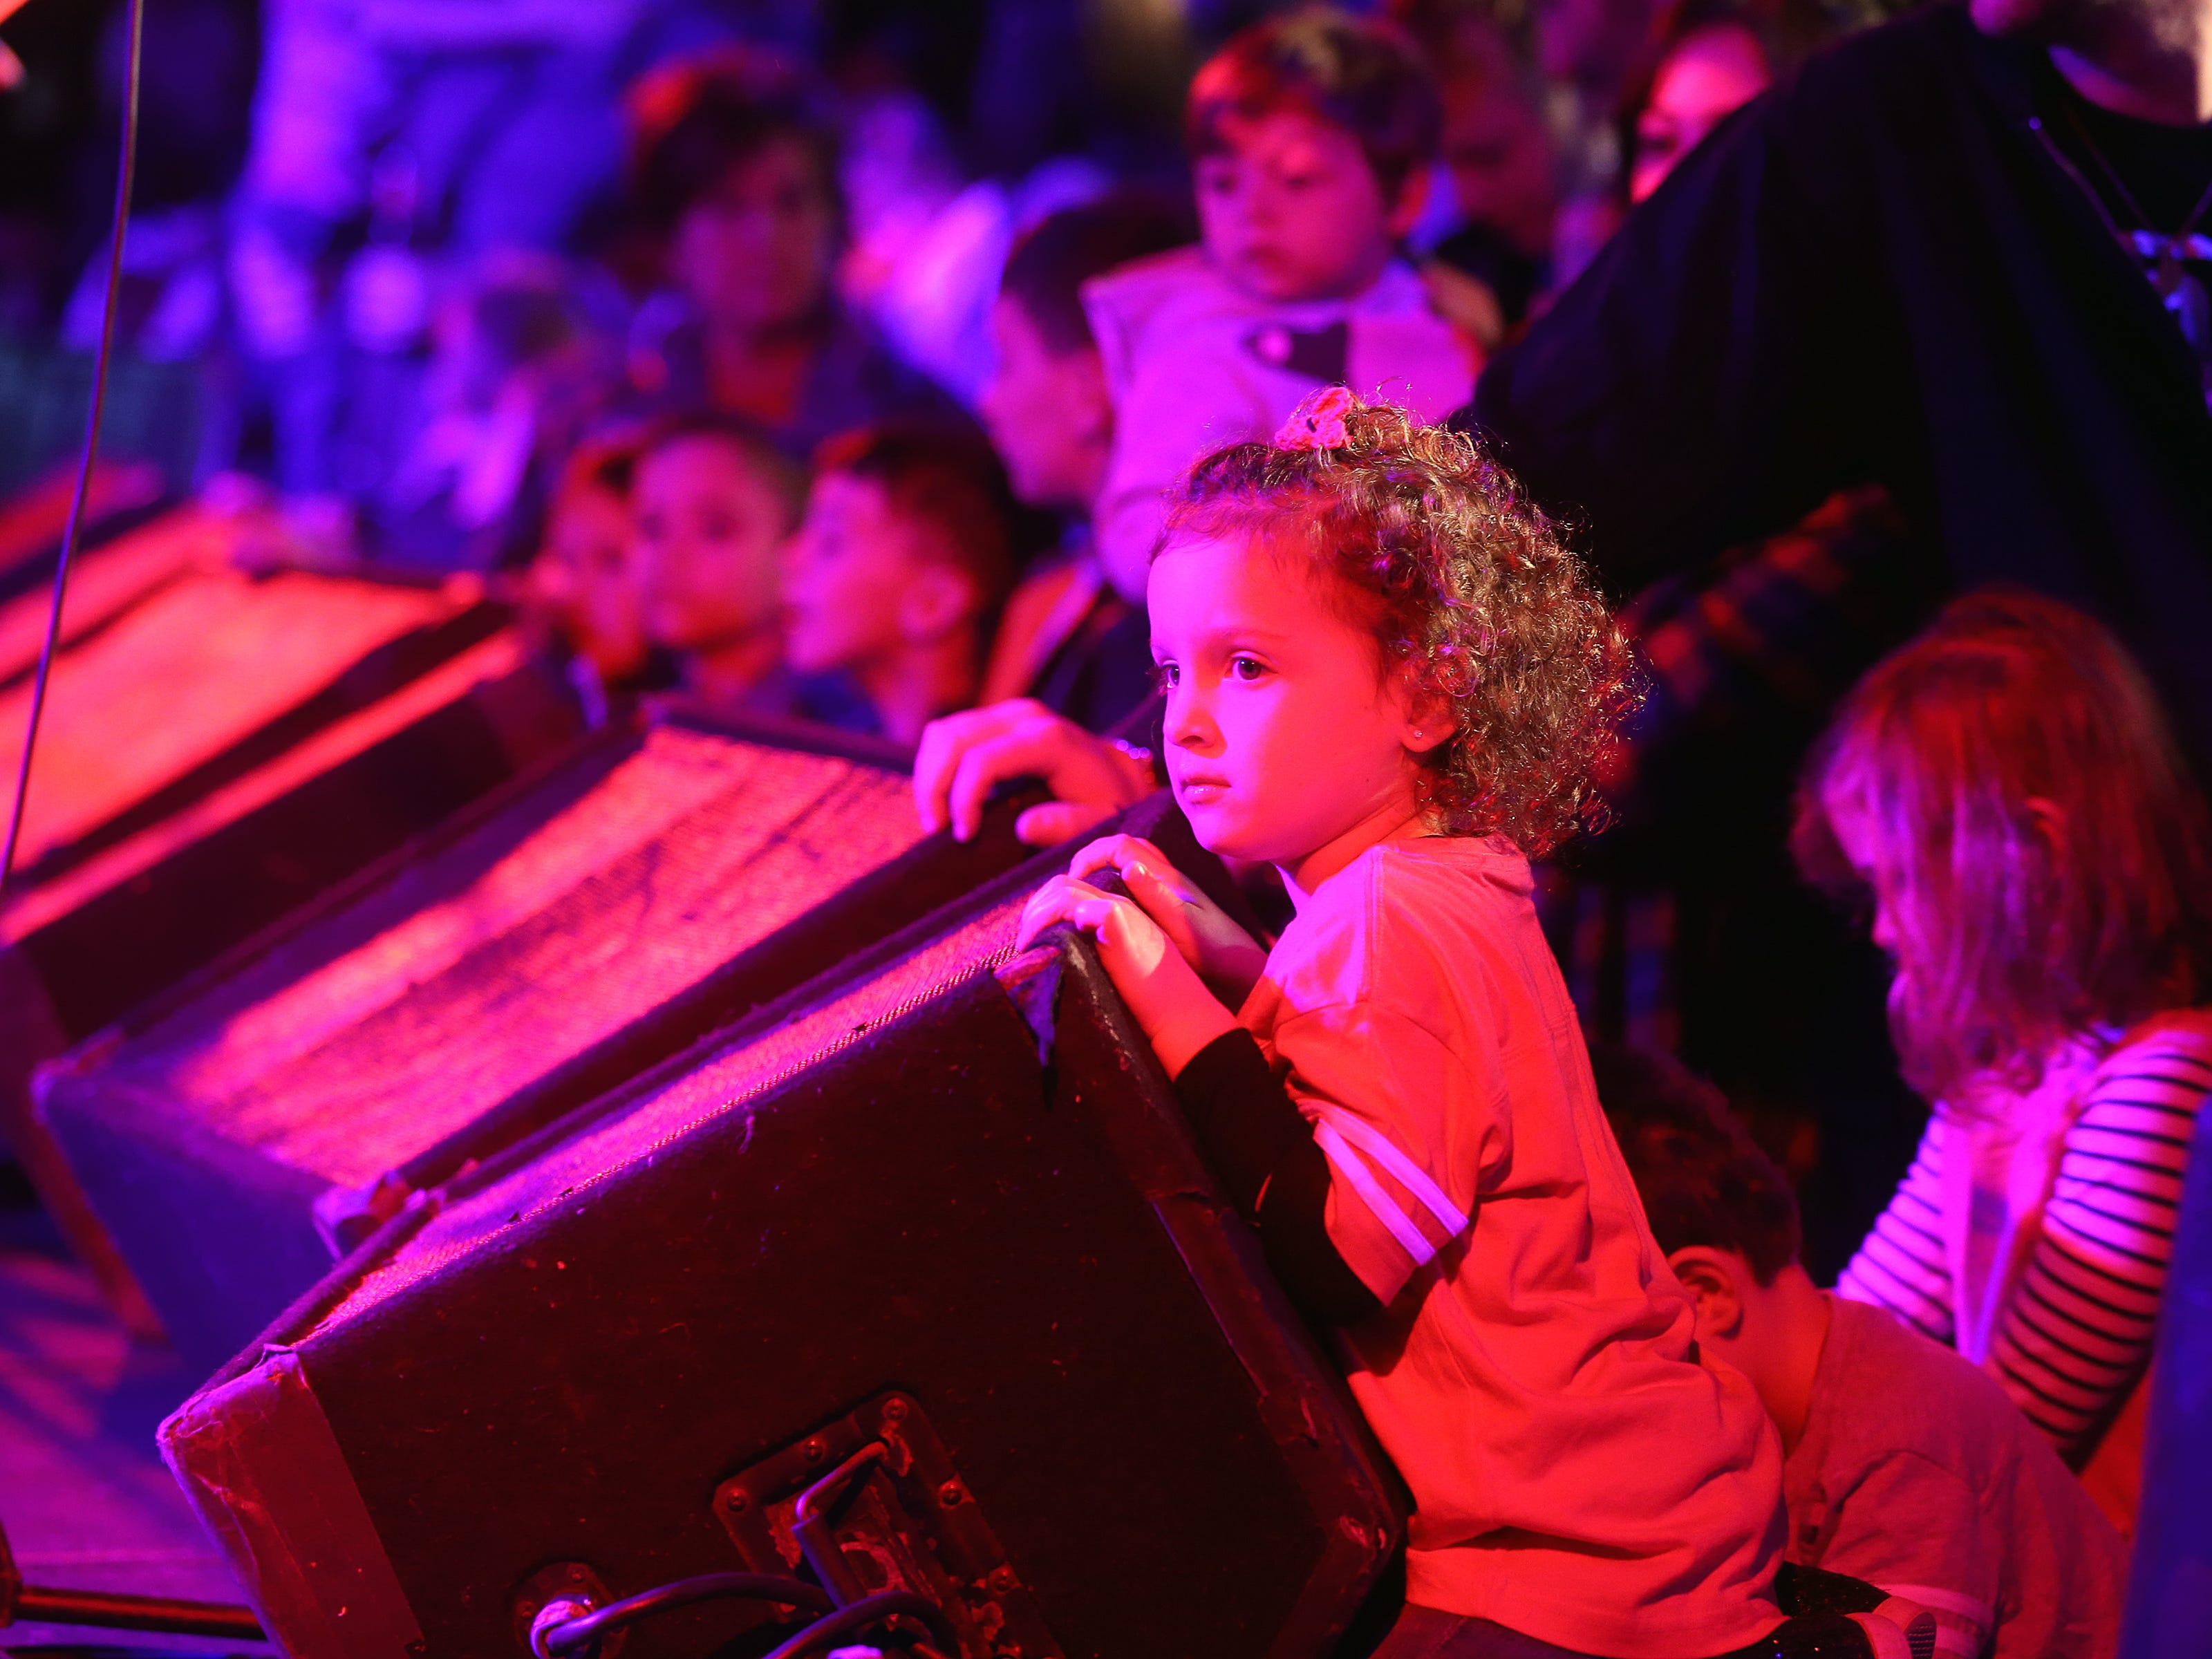 Charlie Ciaccio, 4, of Freehold Twp. sits on stage as the Rock and Roll Playhouse presents the Music of Bruce Springsteen for Kids at the Stone Pony during the Asbury Park Music and Film Festival in Asbury Park, NJ Sunday, April 28, 2019.  #APMFF